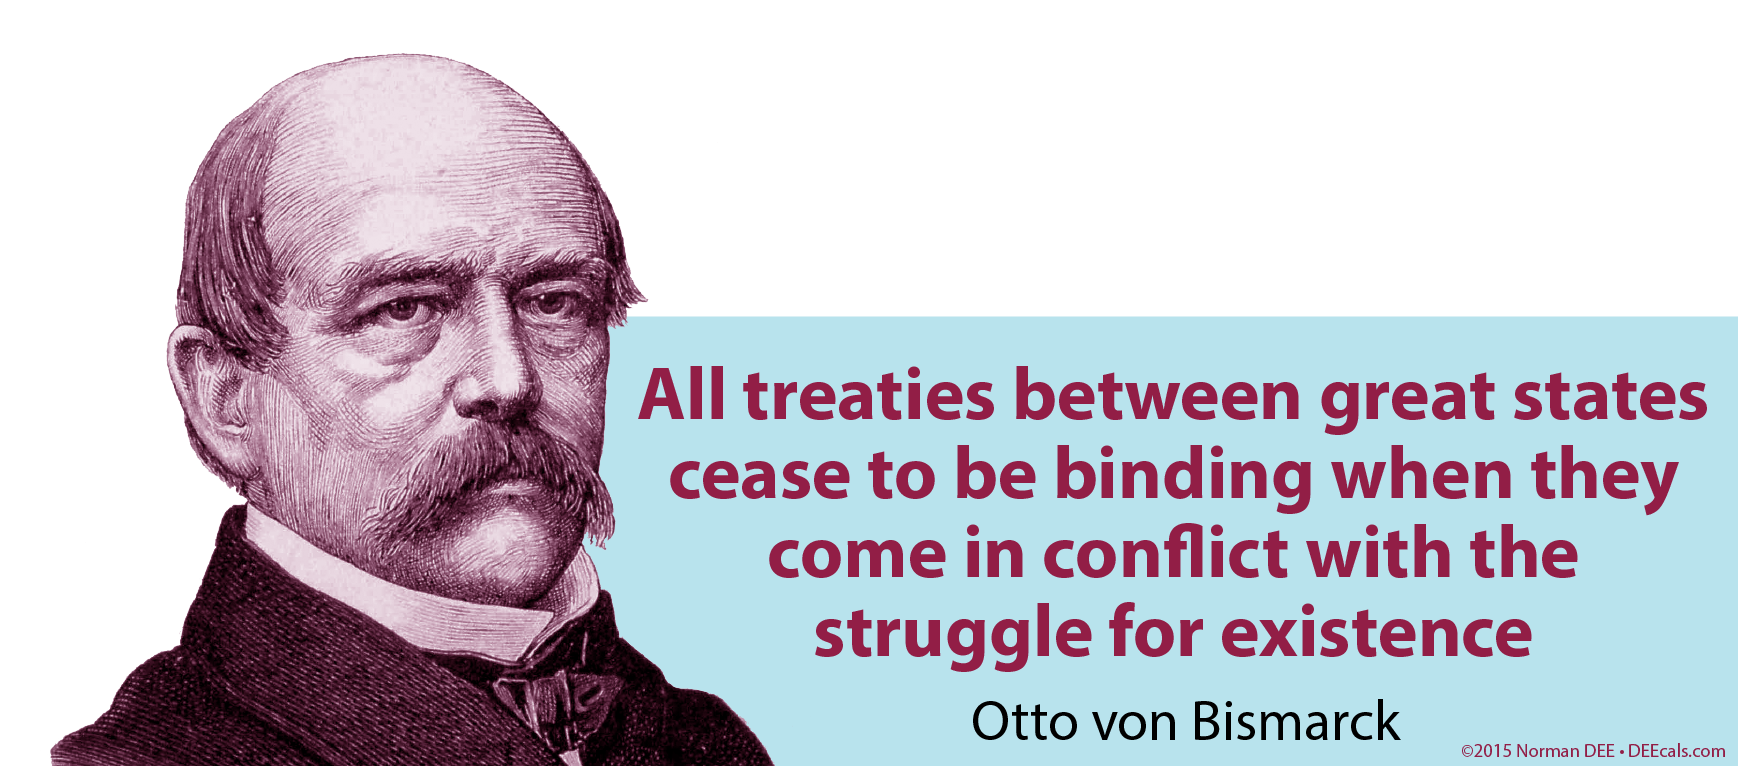 'All treaties between great states cease to be binding when they come in conflict with the struggle for existence.' - Otto von Bismarck